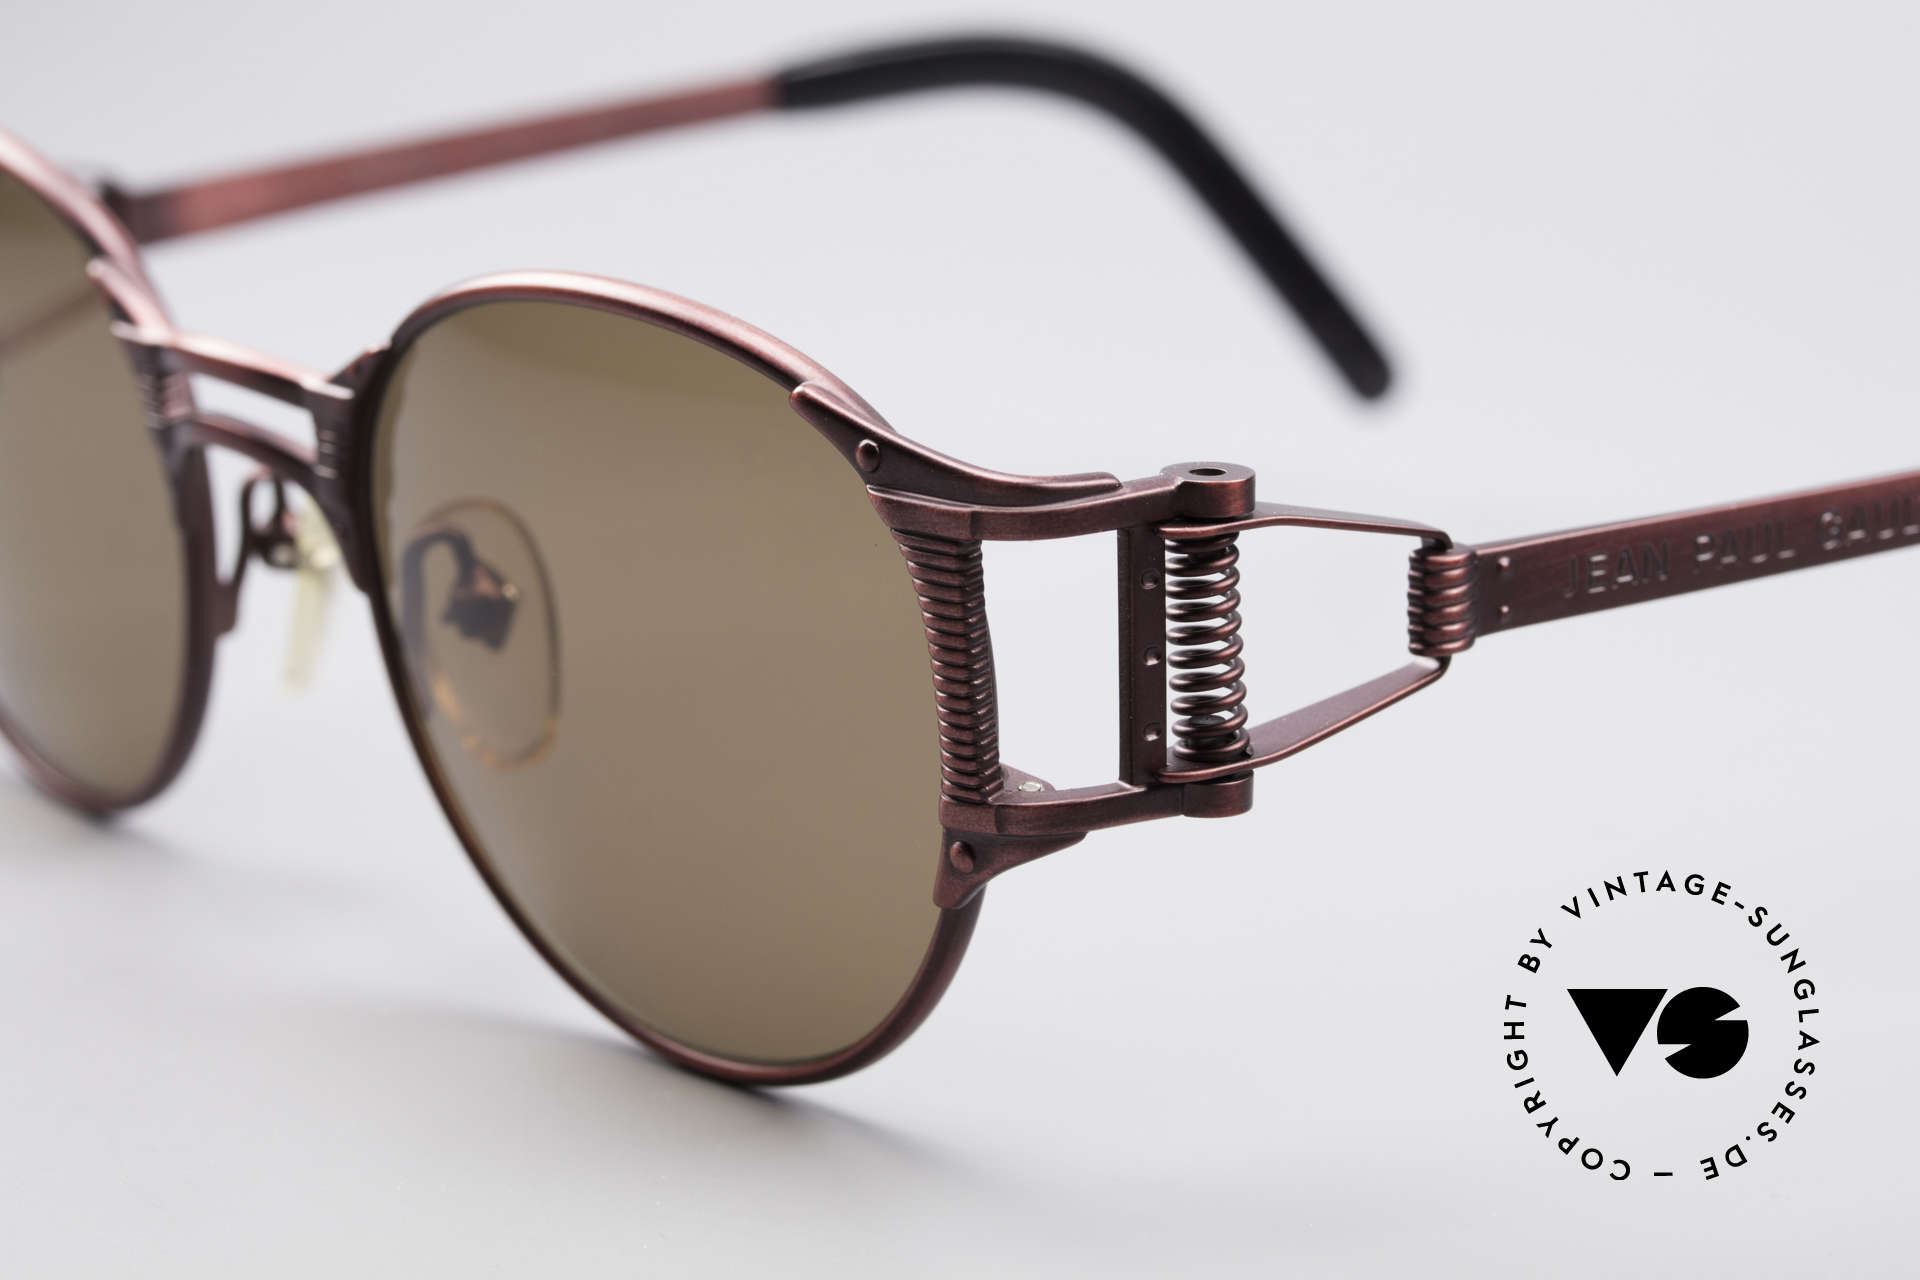 Jean Paul Gaultier 56-5105 Rare Celebrity Sunglasses, monolithic JPG design (true 'vintage'!); made in Japan, Made for Men and Women